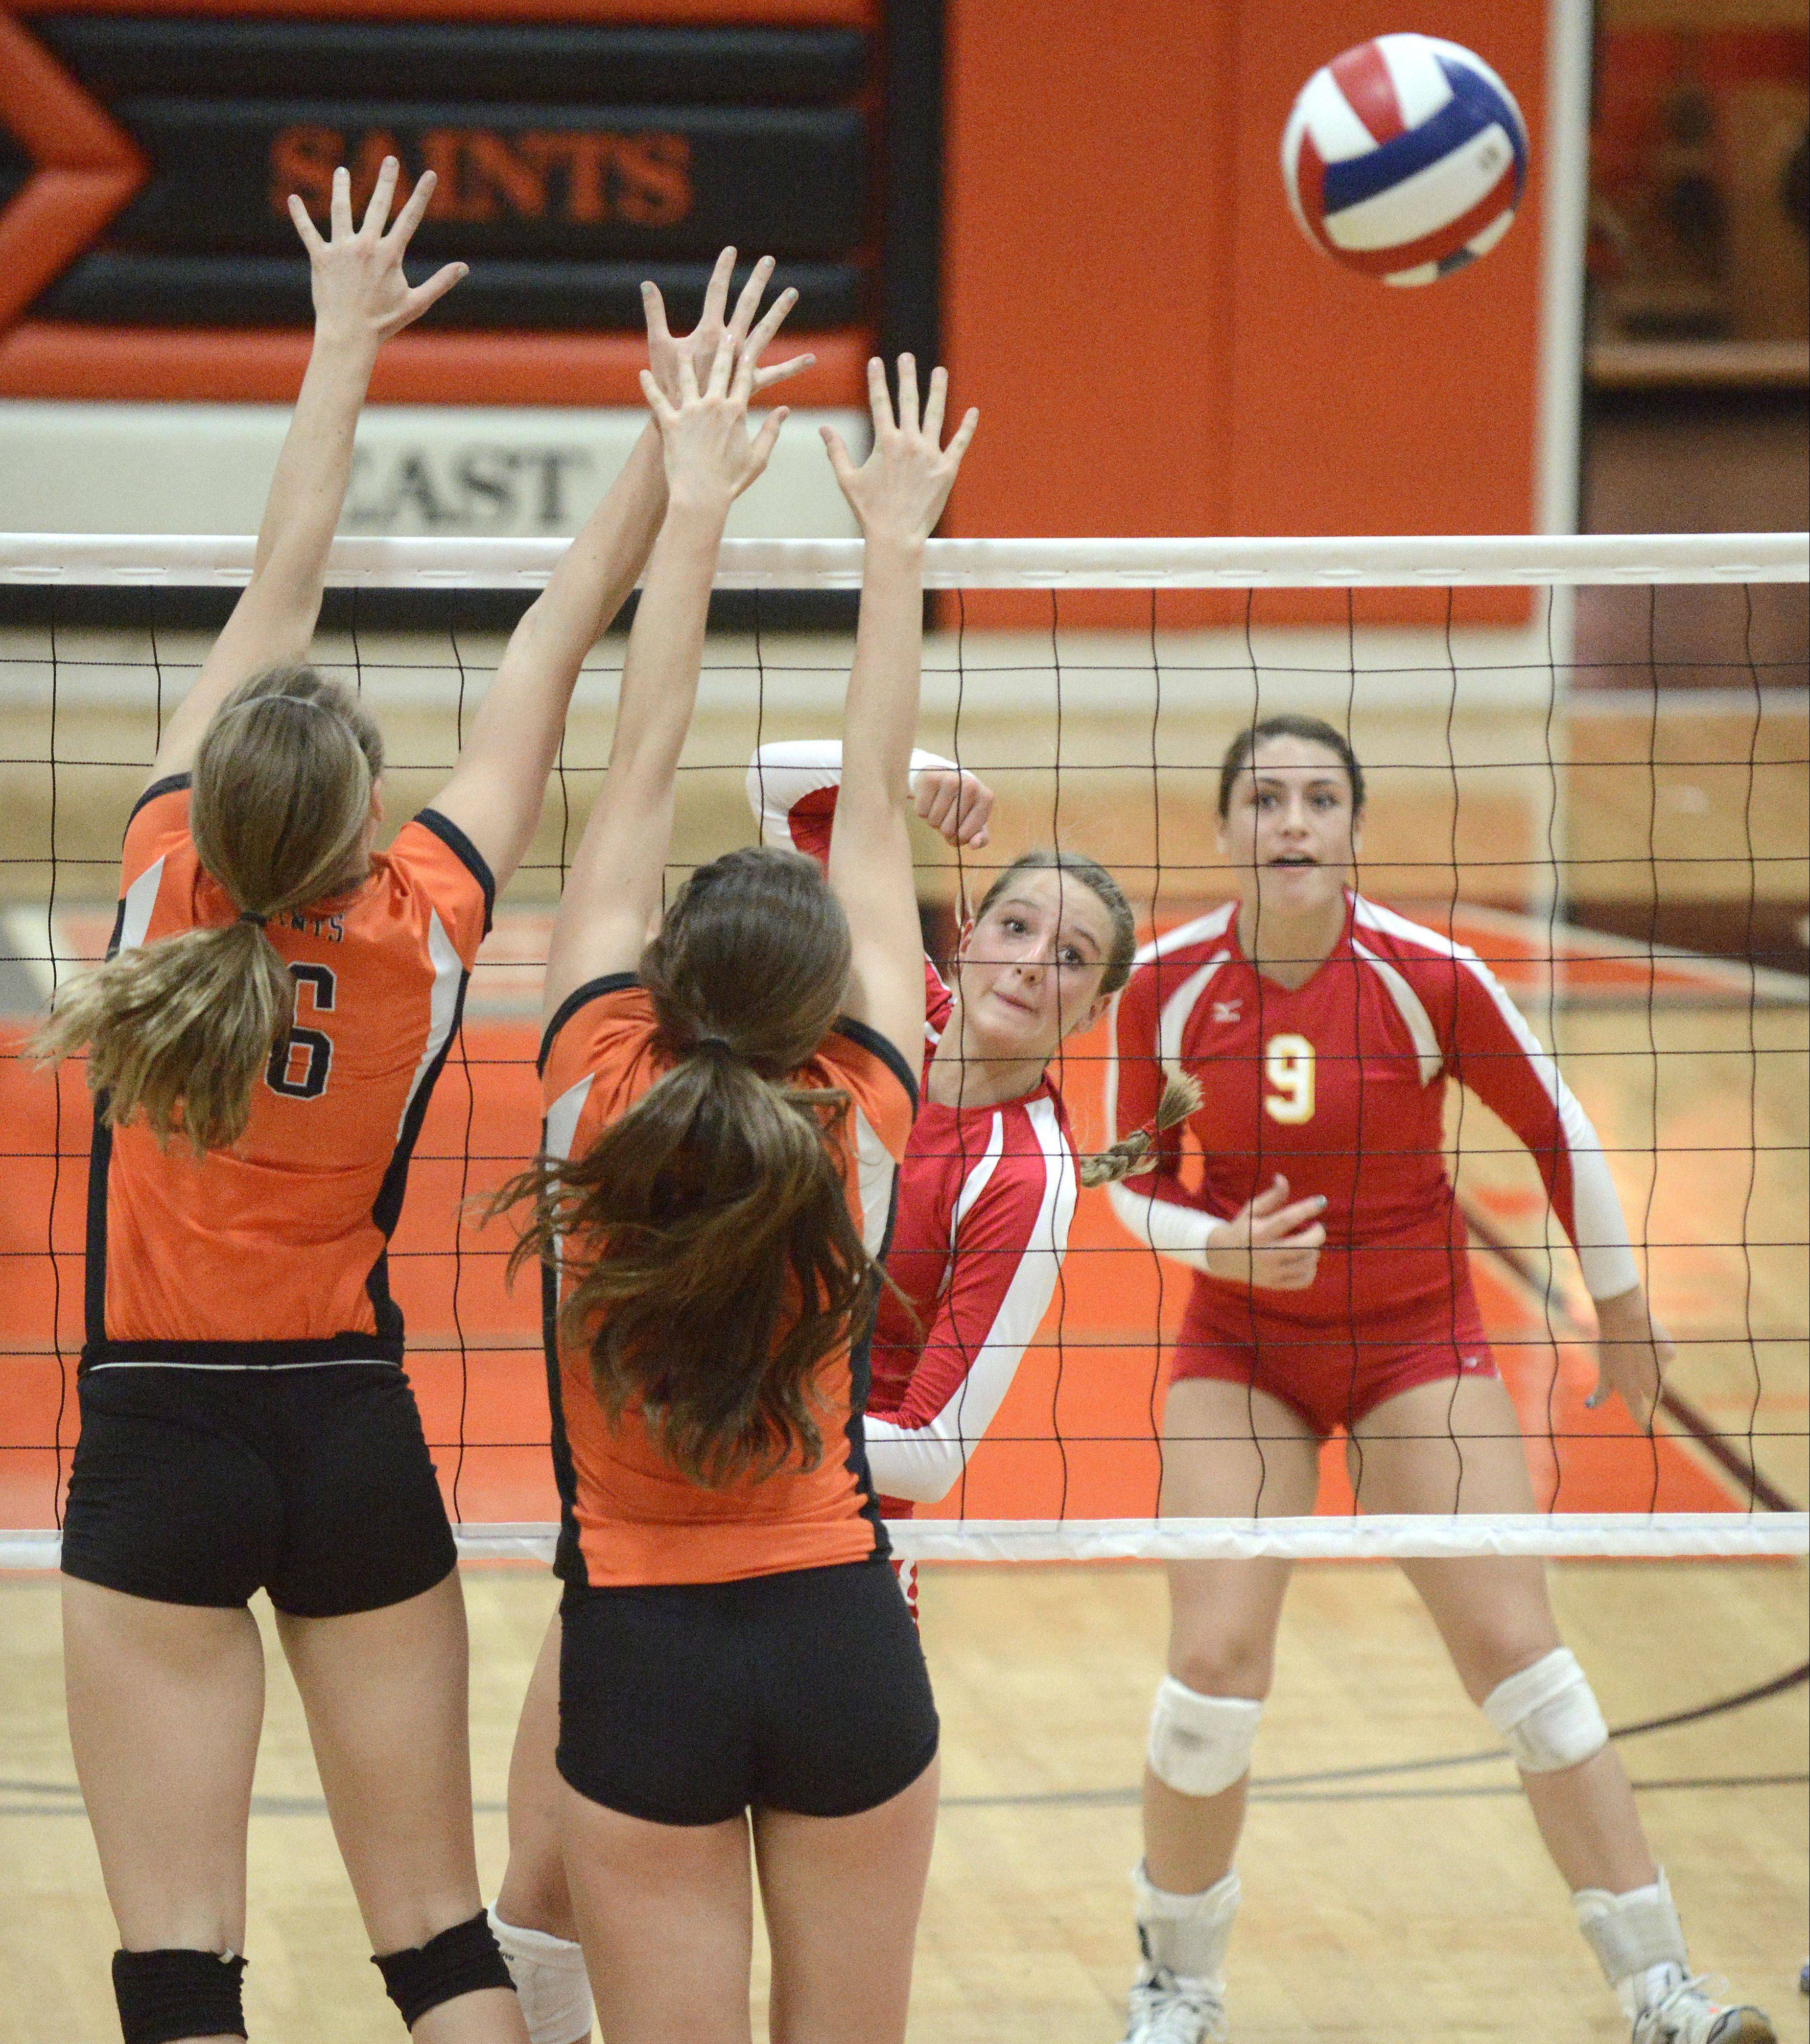 St. Charles East's Dana Voltolina and Alex Mazanke attempt to block a spike by Batavia's Jancy Lundberg in the first match on Tuesday, October 14.